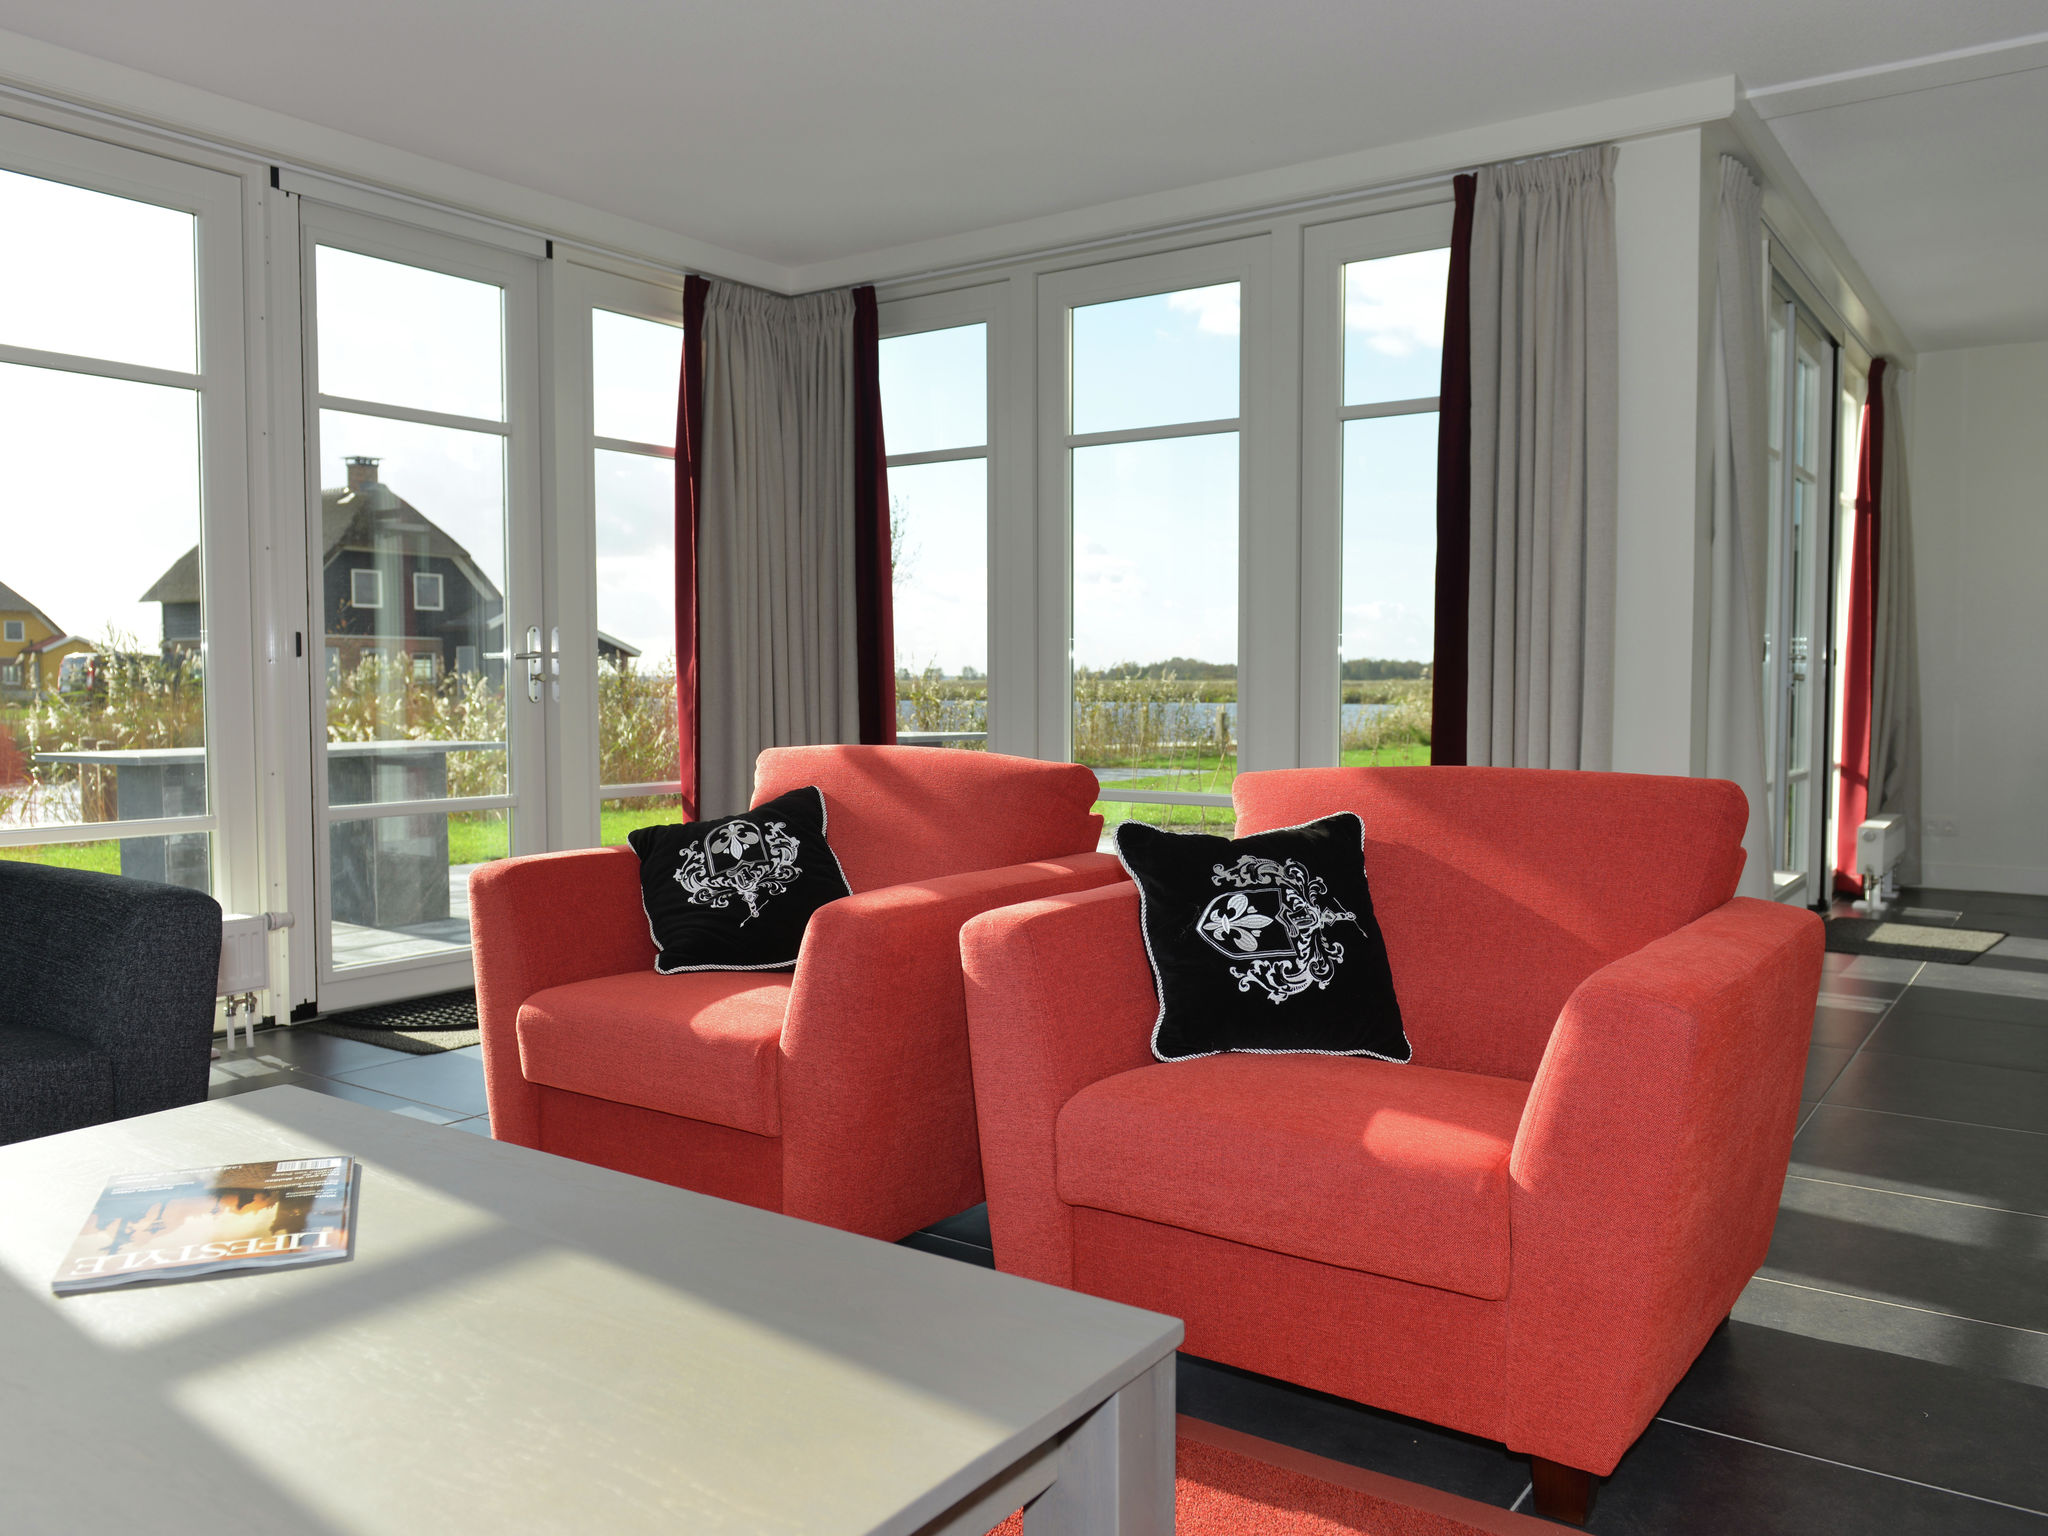 Holland | Overijssel | Holiday home Waterresort Bodelaeke - Ruimte aan 't Water Wellne | all year | LivingRoom